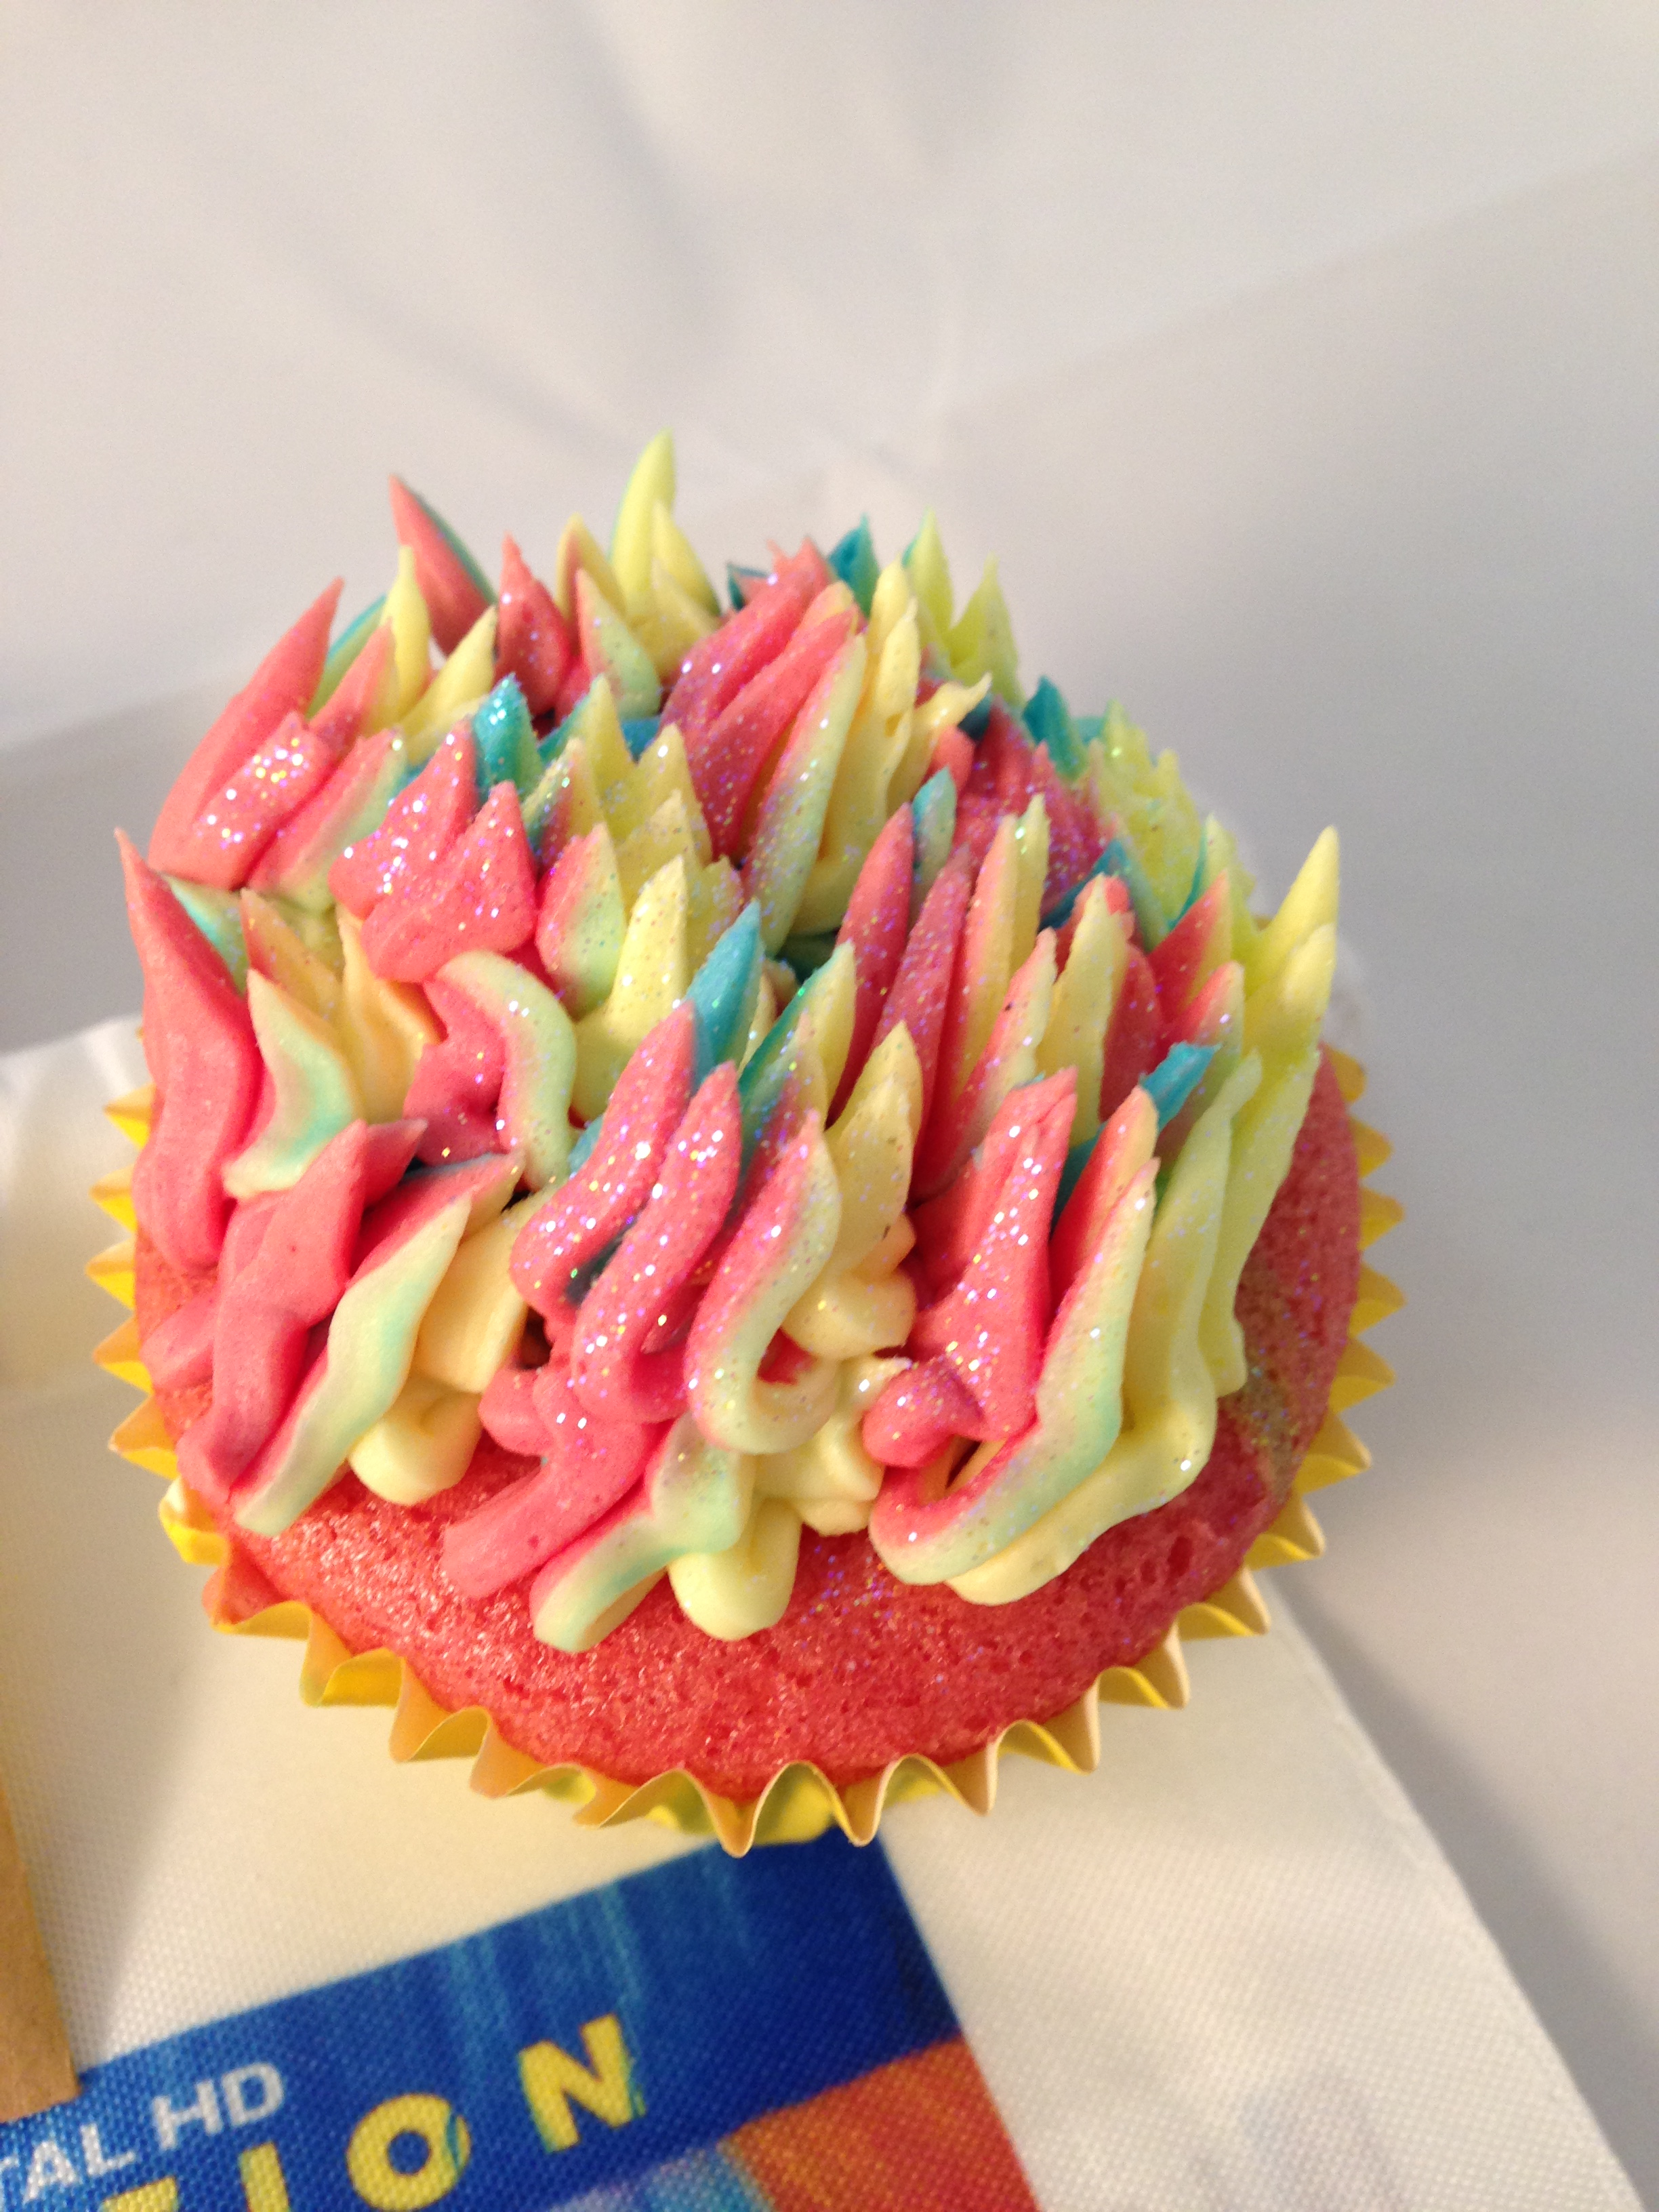 A colourful glitter cupcake, with rainbow icing whirls